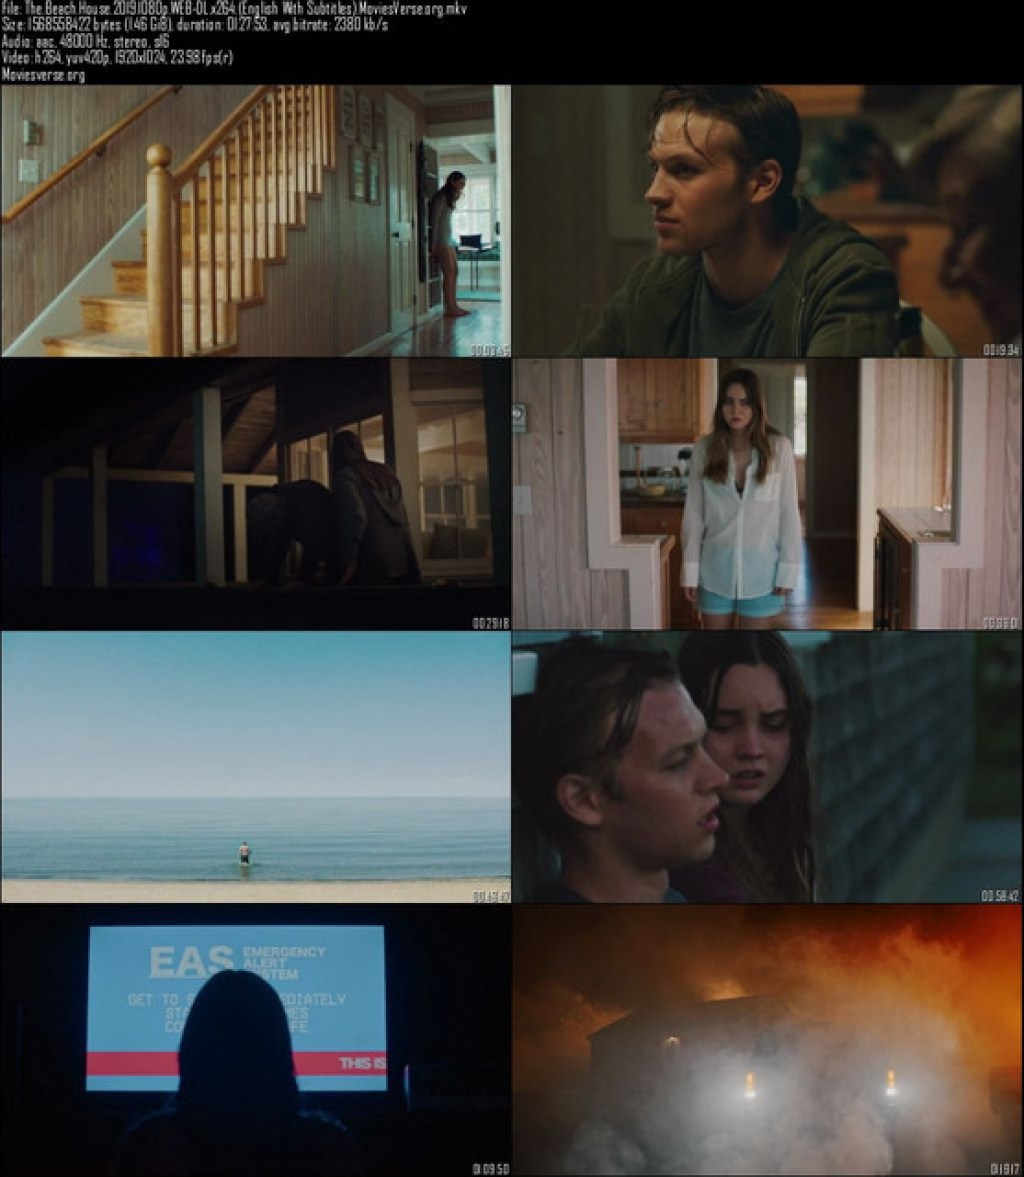 The-Beach-House-2019-1080p-WEB-DL-x264-English-With-Subtitles-Movies-Verse-org